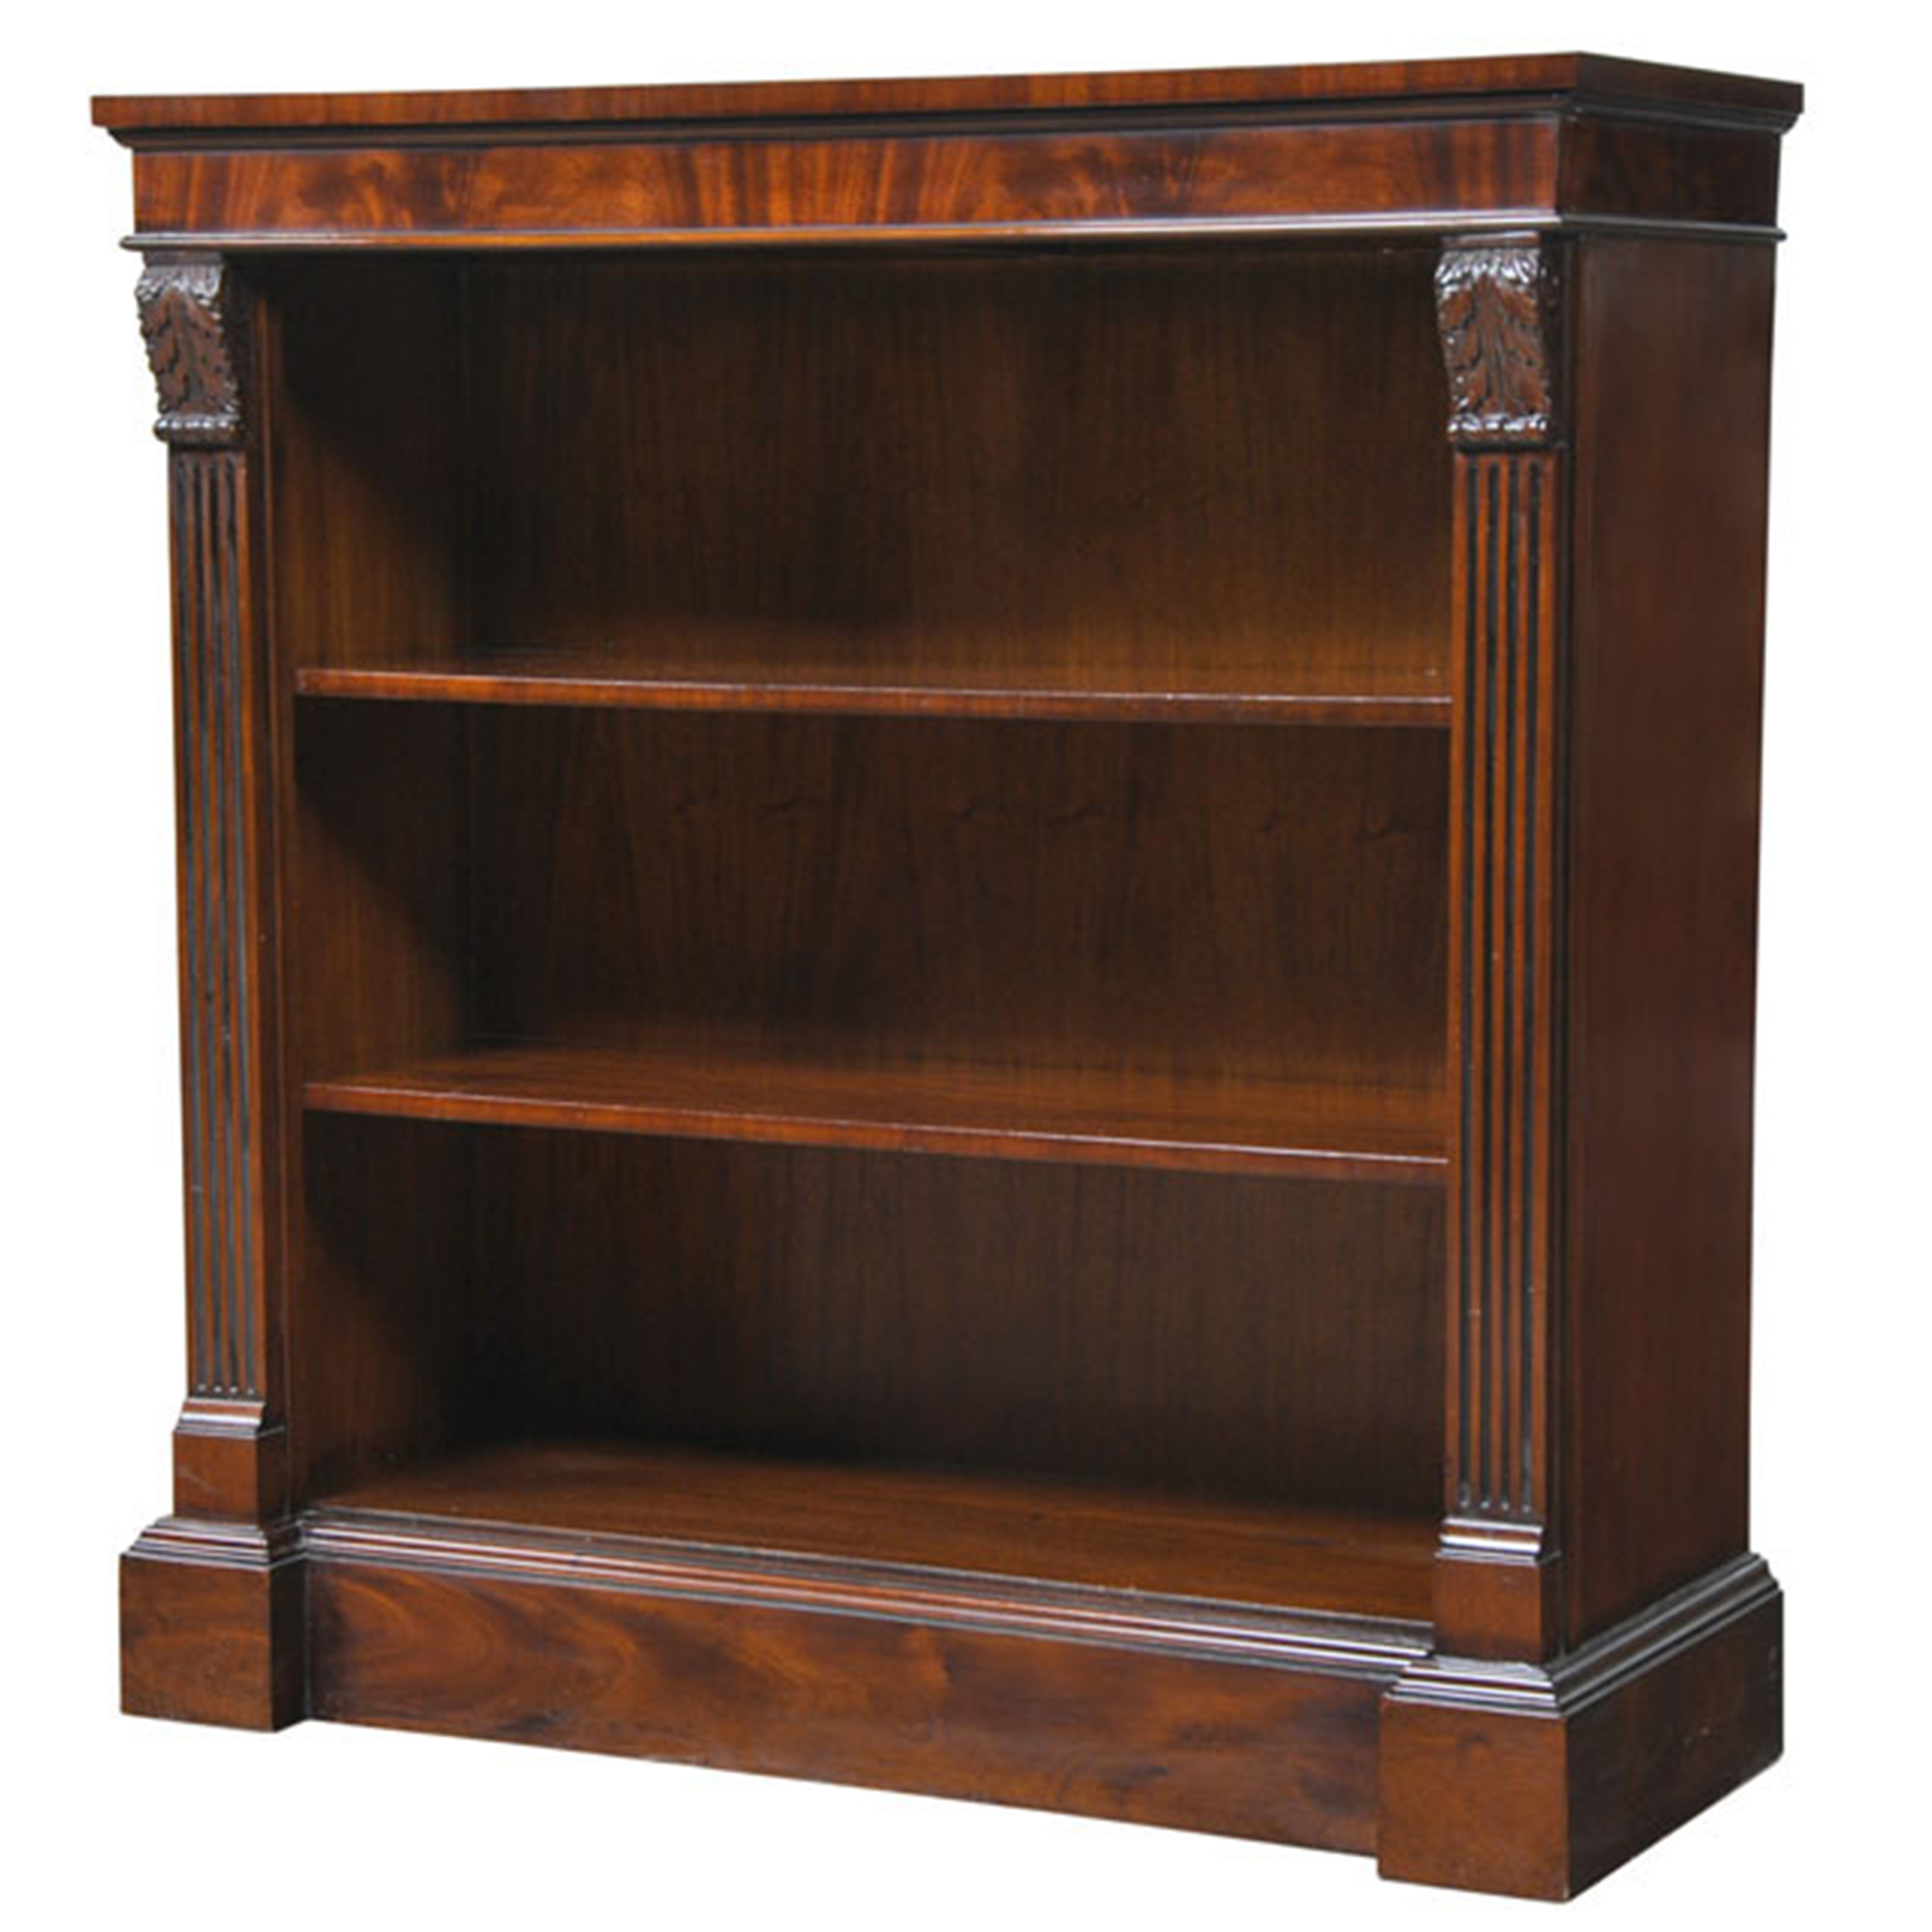 Mahogany bookshelf 28 images solid mahogany bookshelf bookcase 67414 qqynlev3m0 mahogany Badcock home furniture more cutler bay fl